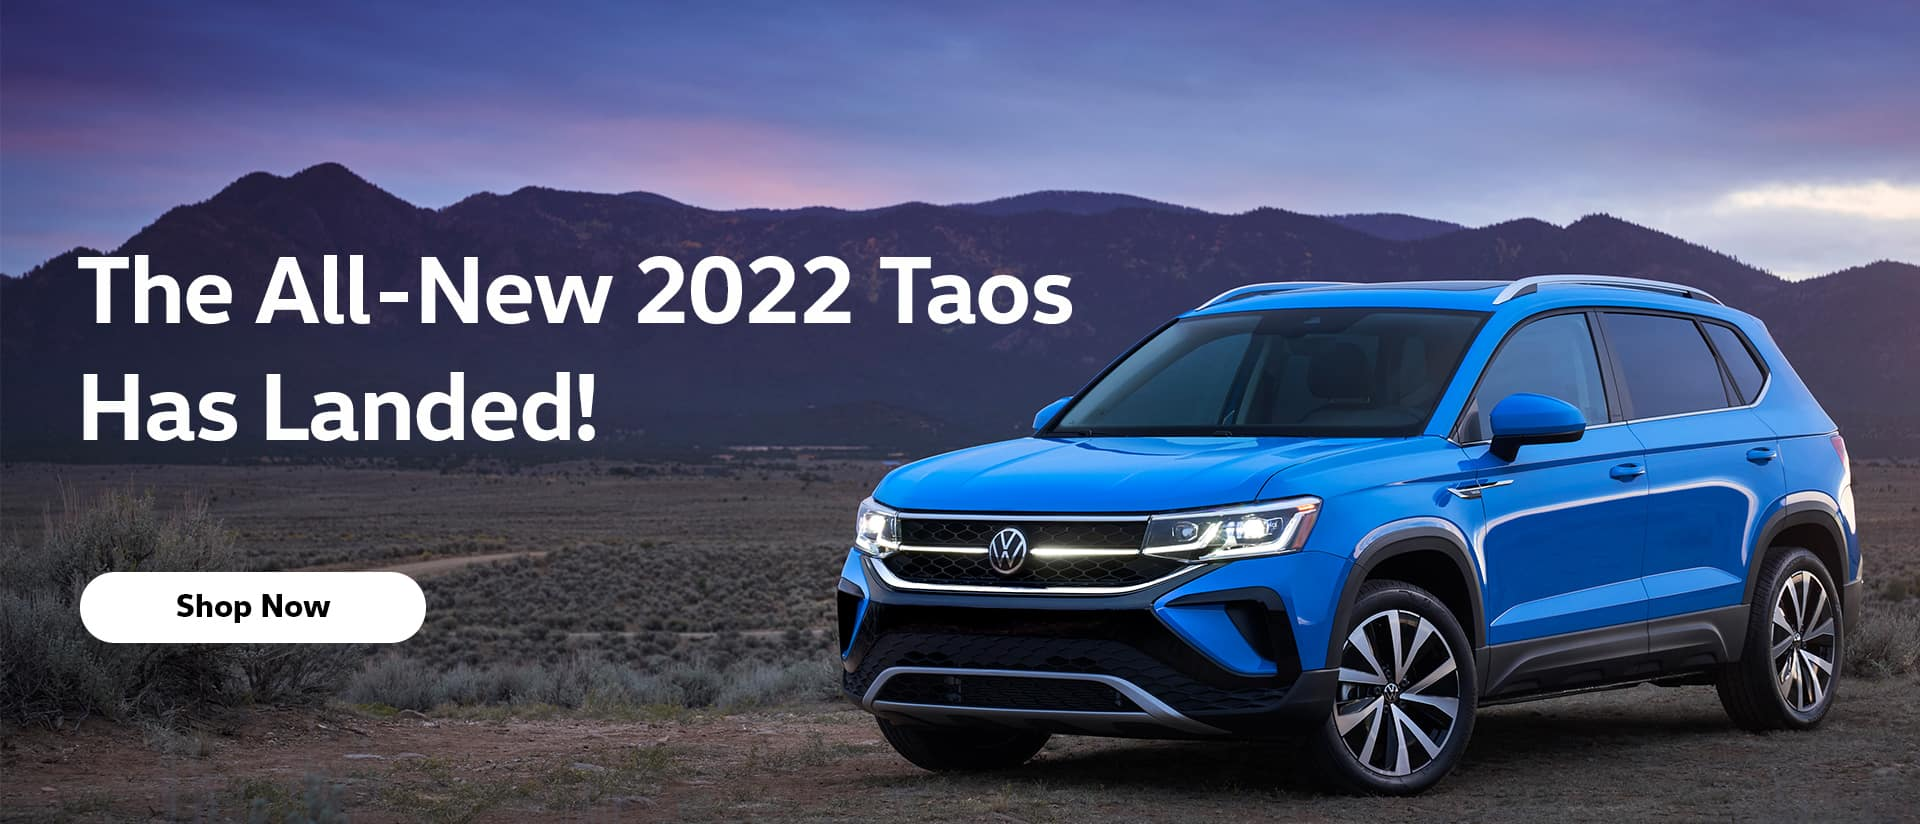 2022 Taos has arrived